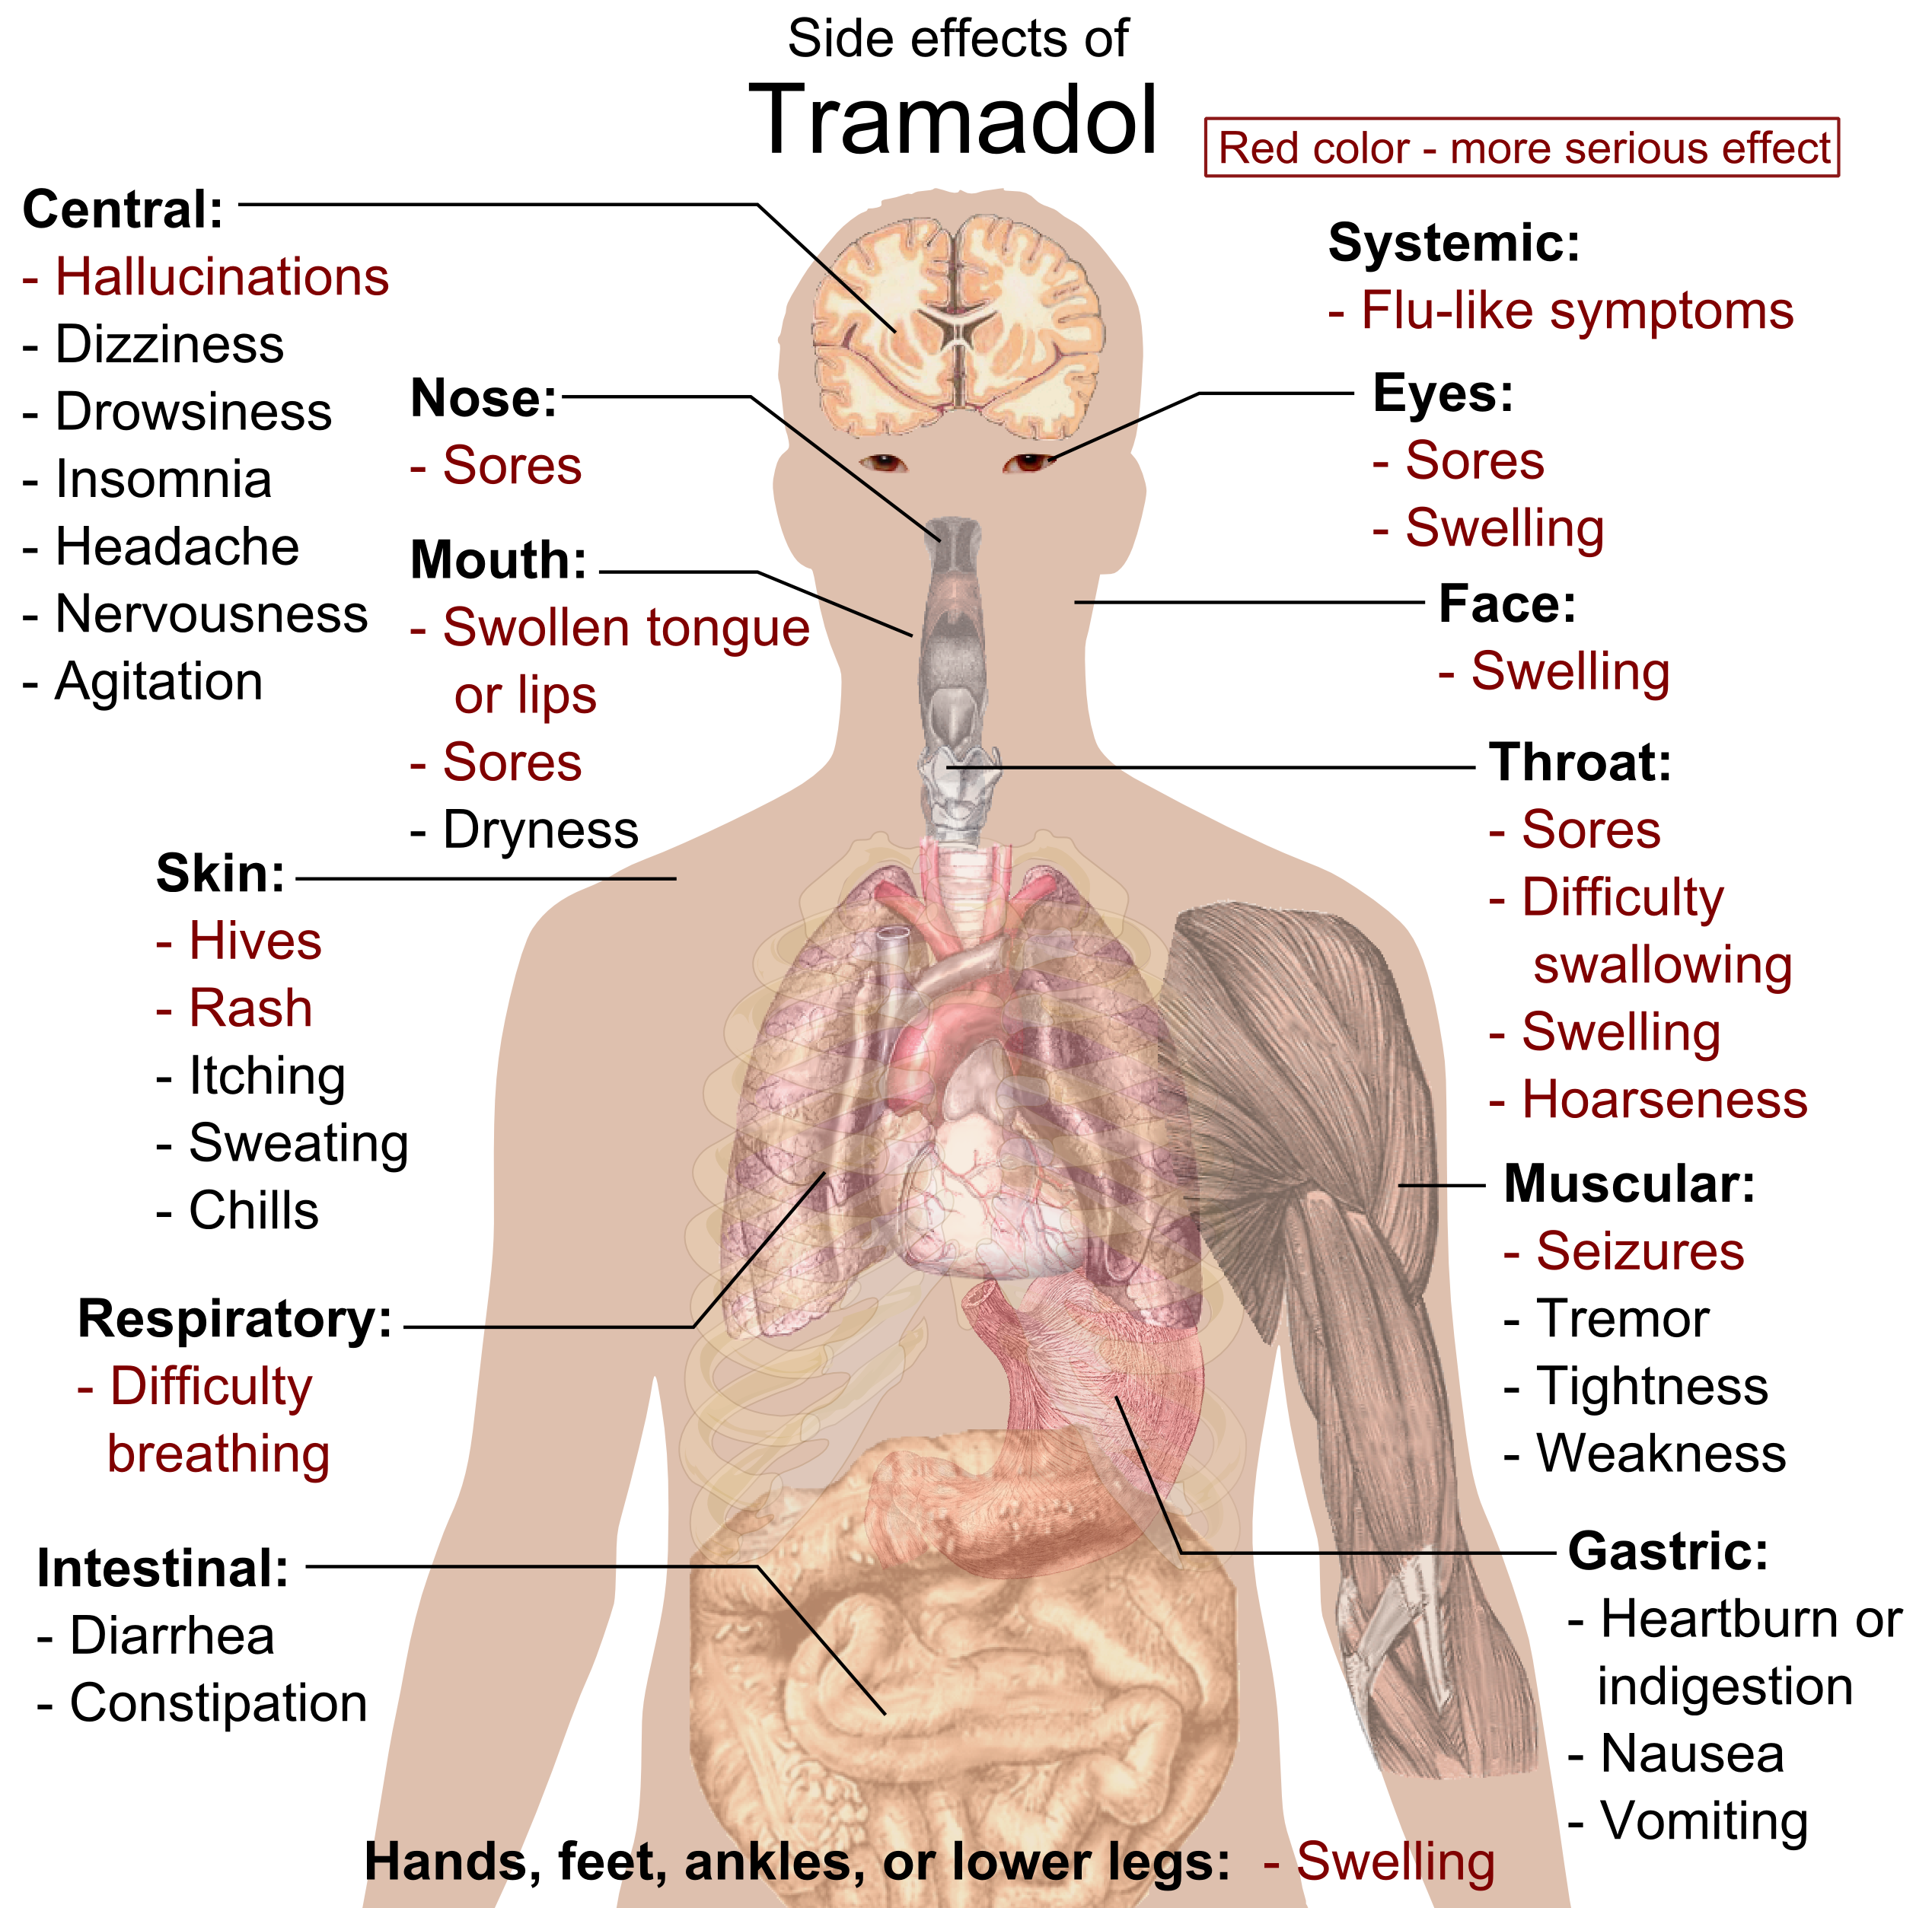 tramadol withdrawal symptoms itching